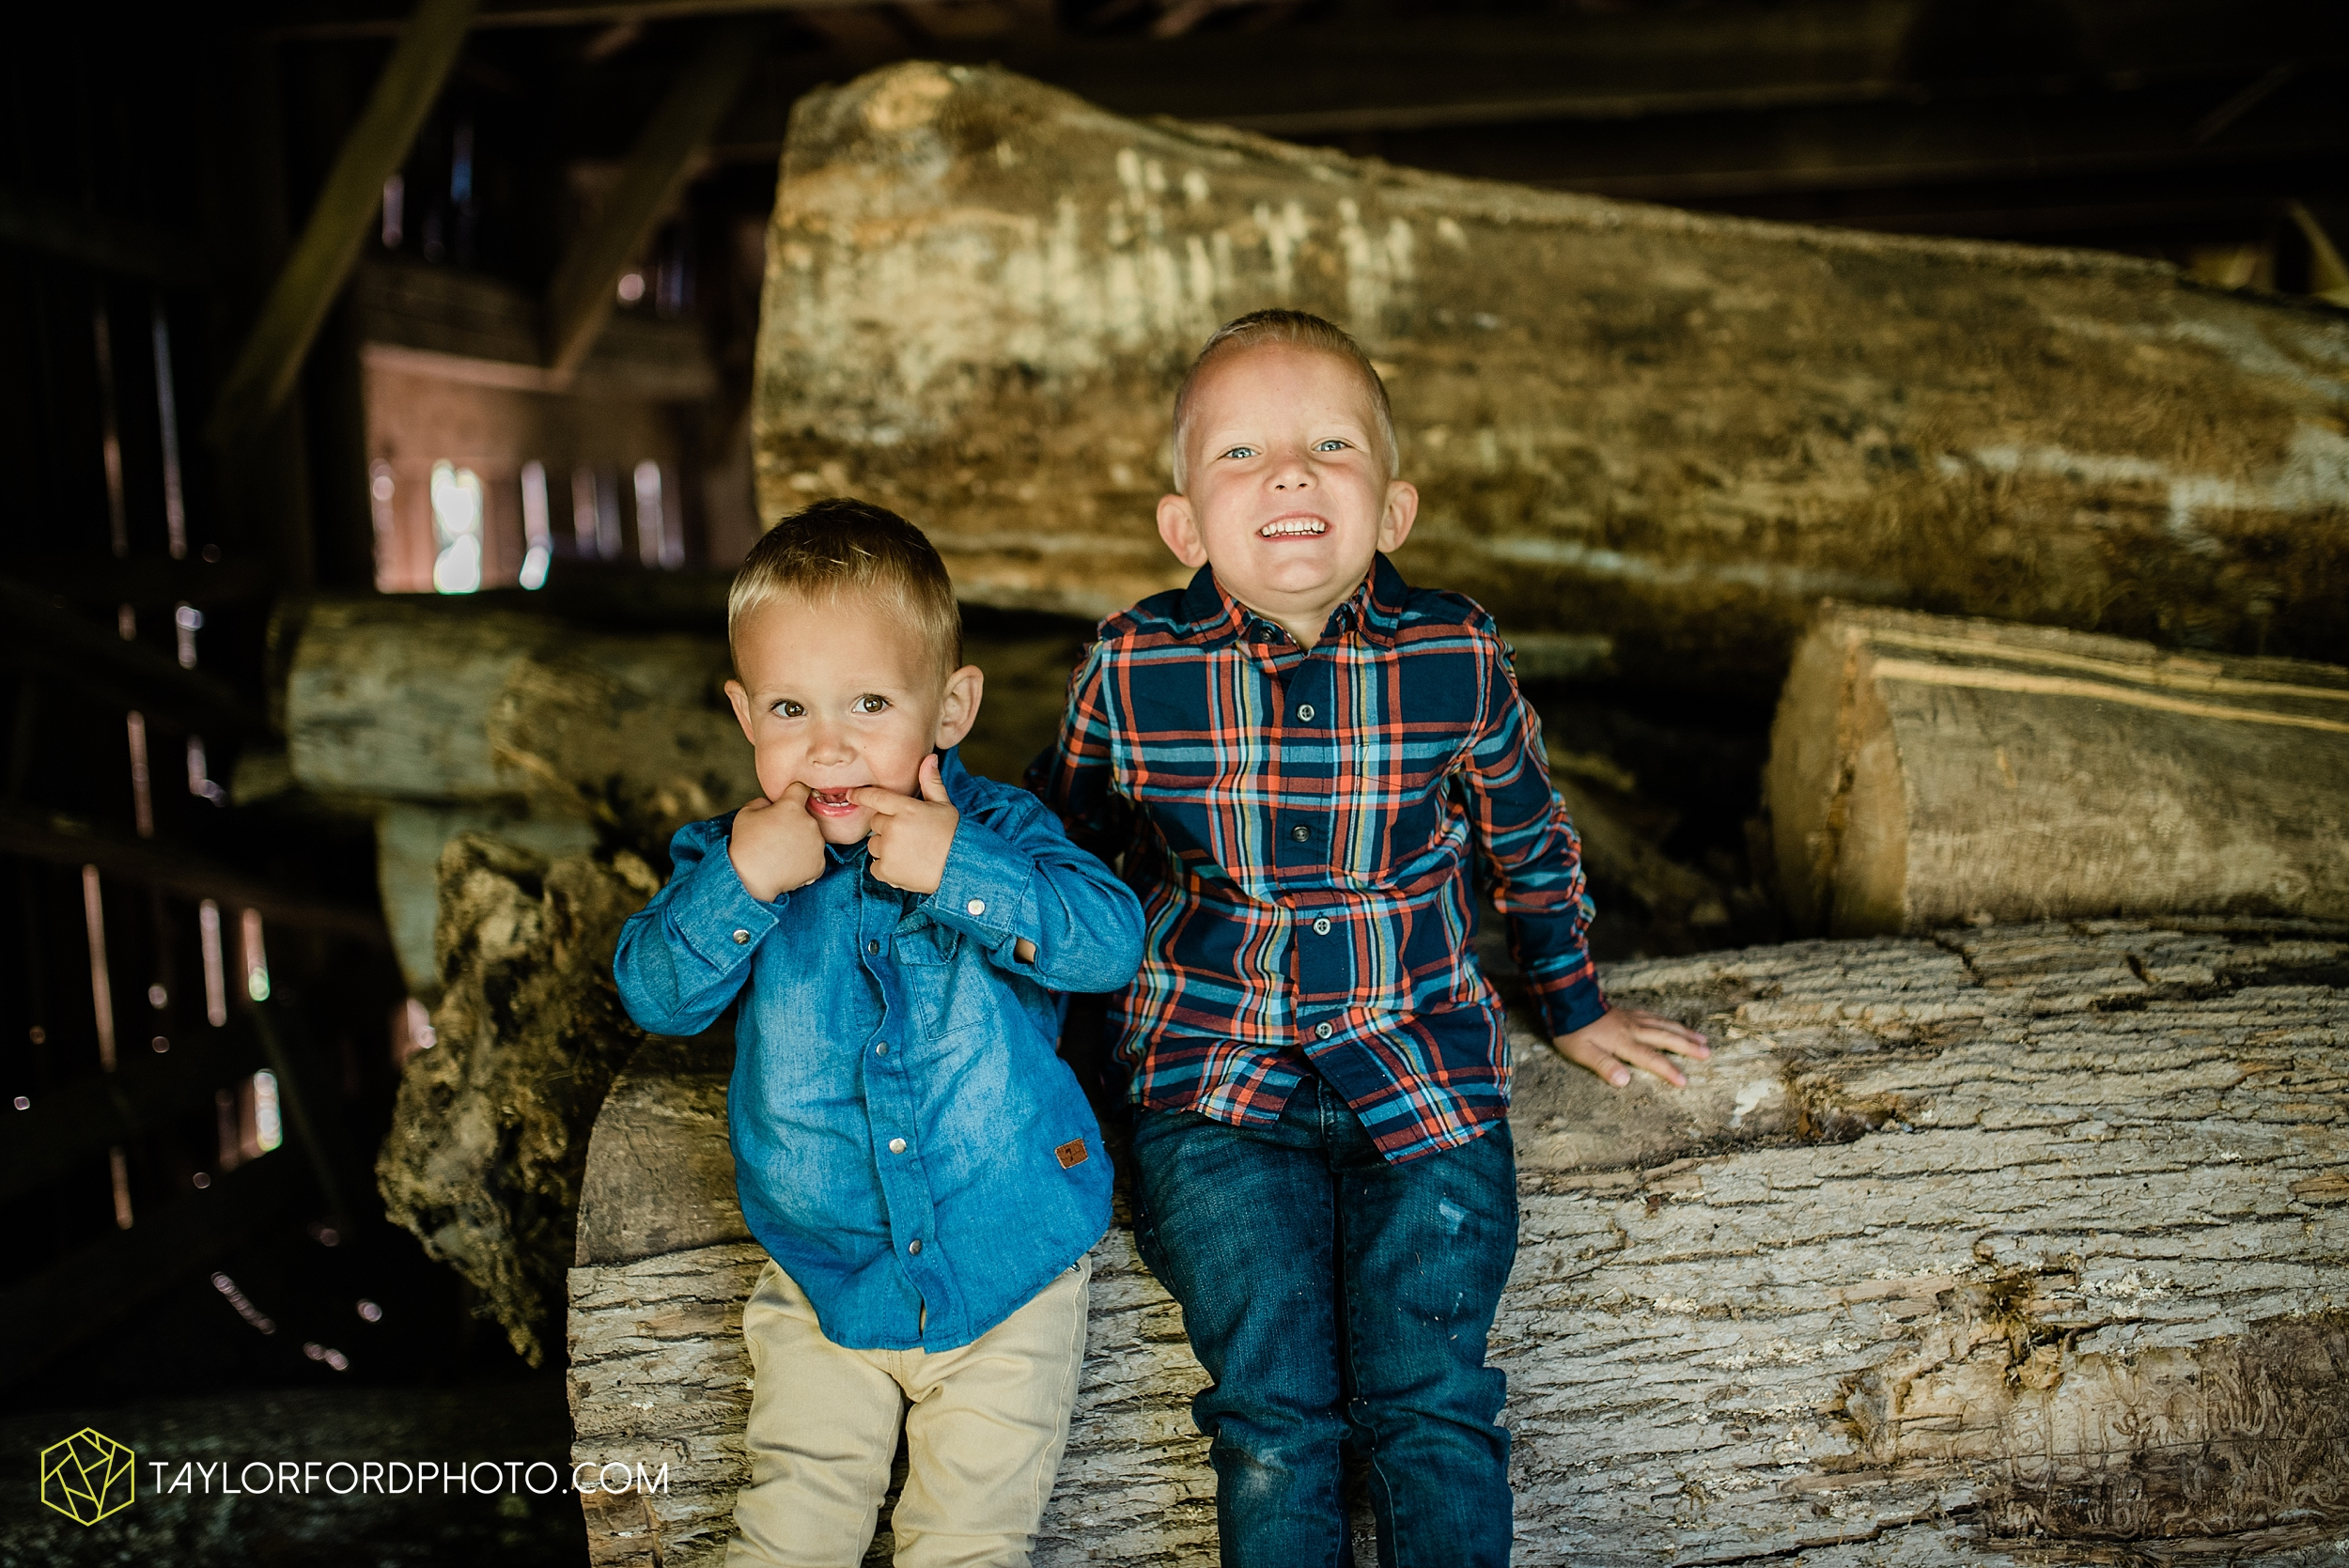 delphos-fort-jennings-ohio-at-home-lifestyle-farm-extended-family-photographer-taylor-ford-photography_0738.jpg